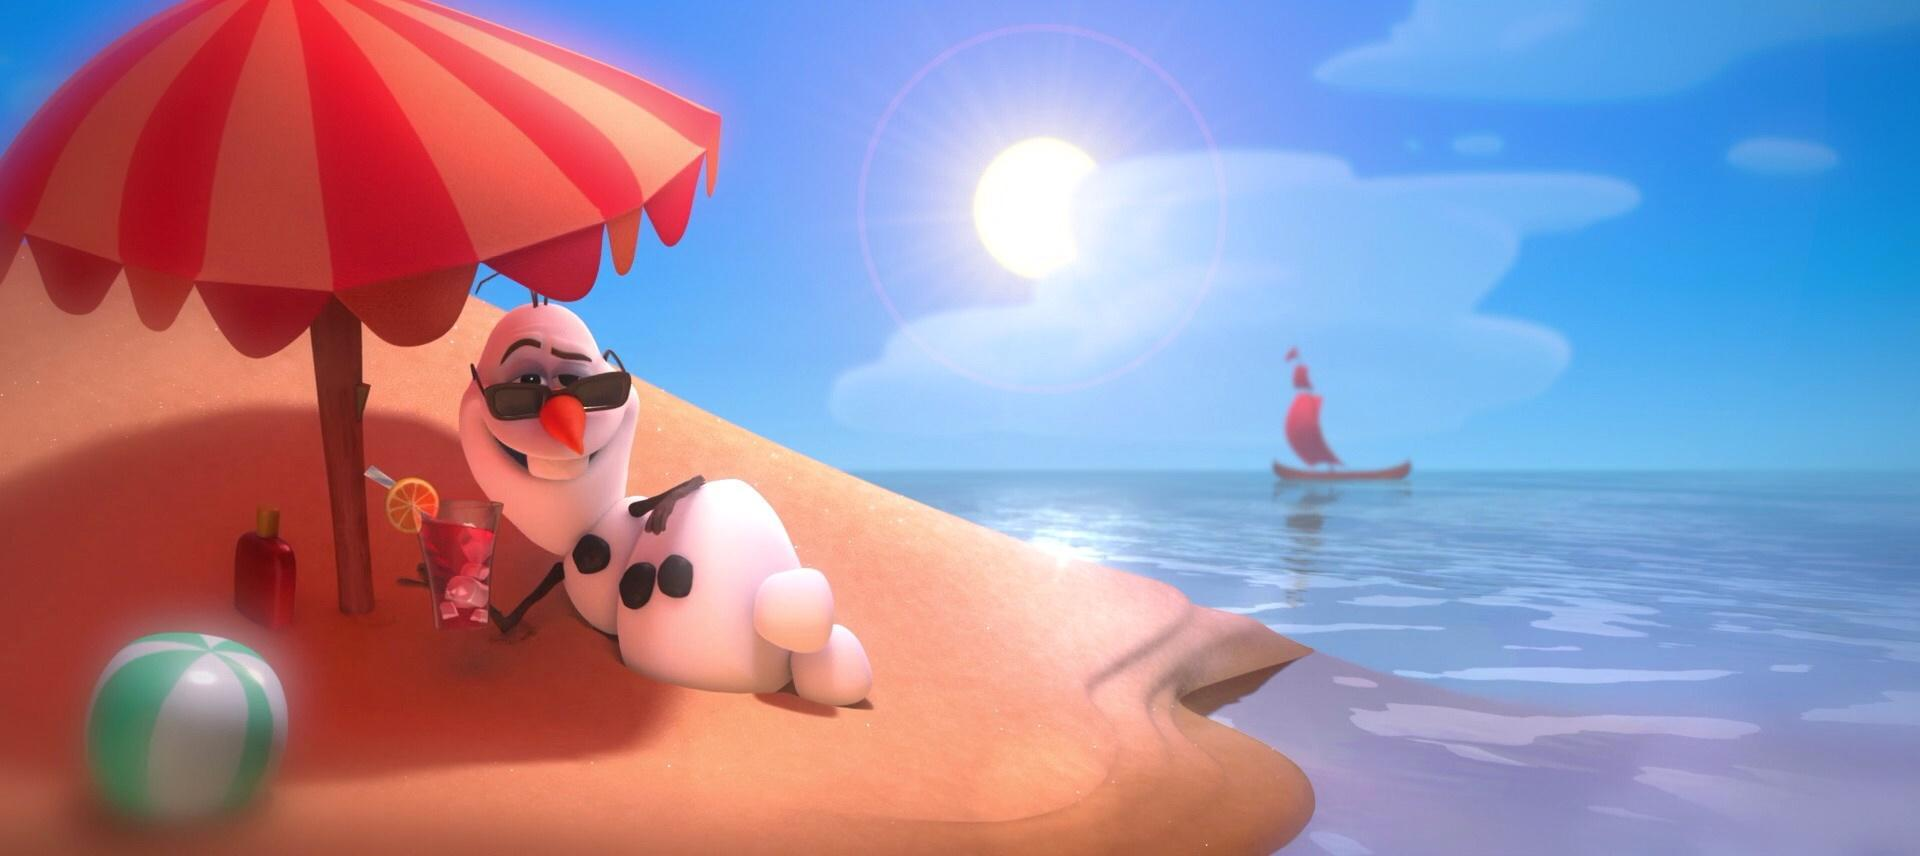 In Summer (Olaf)